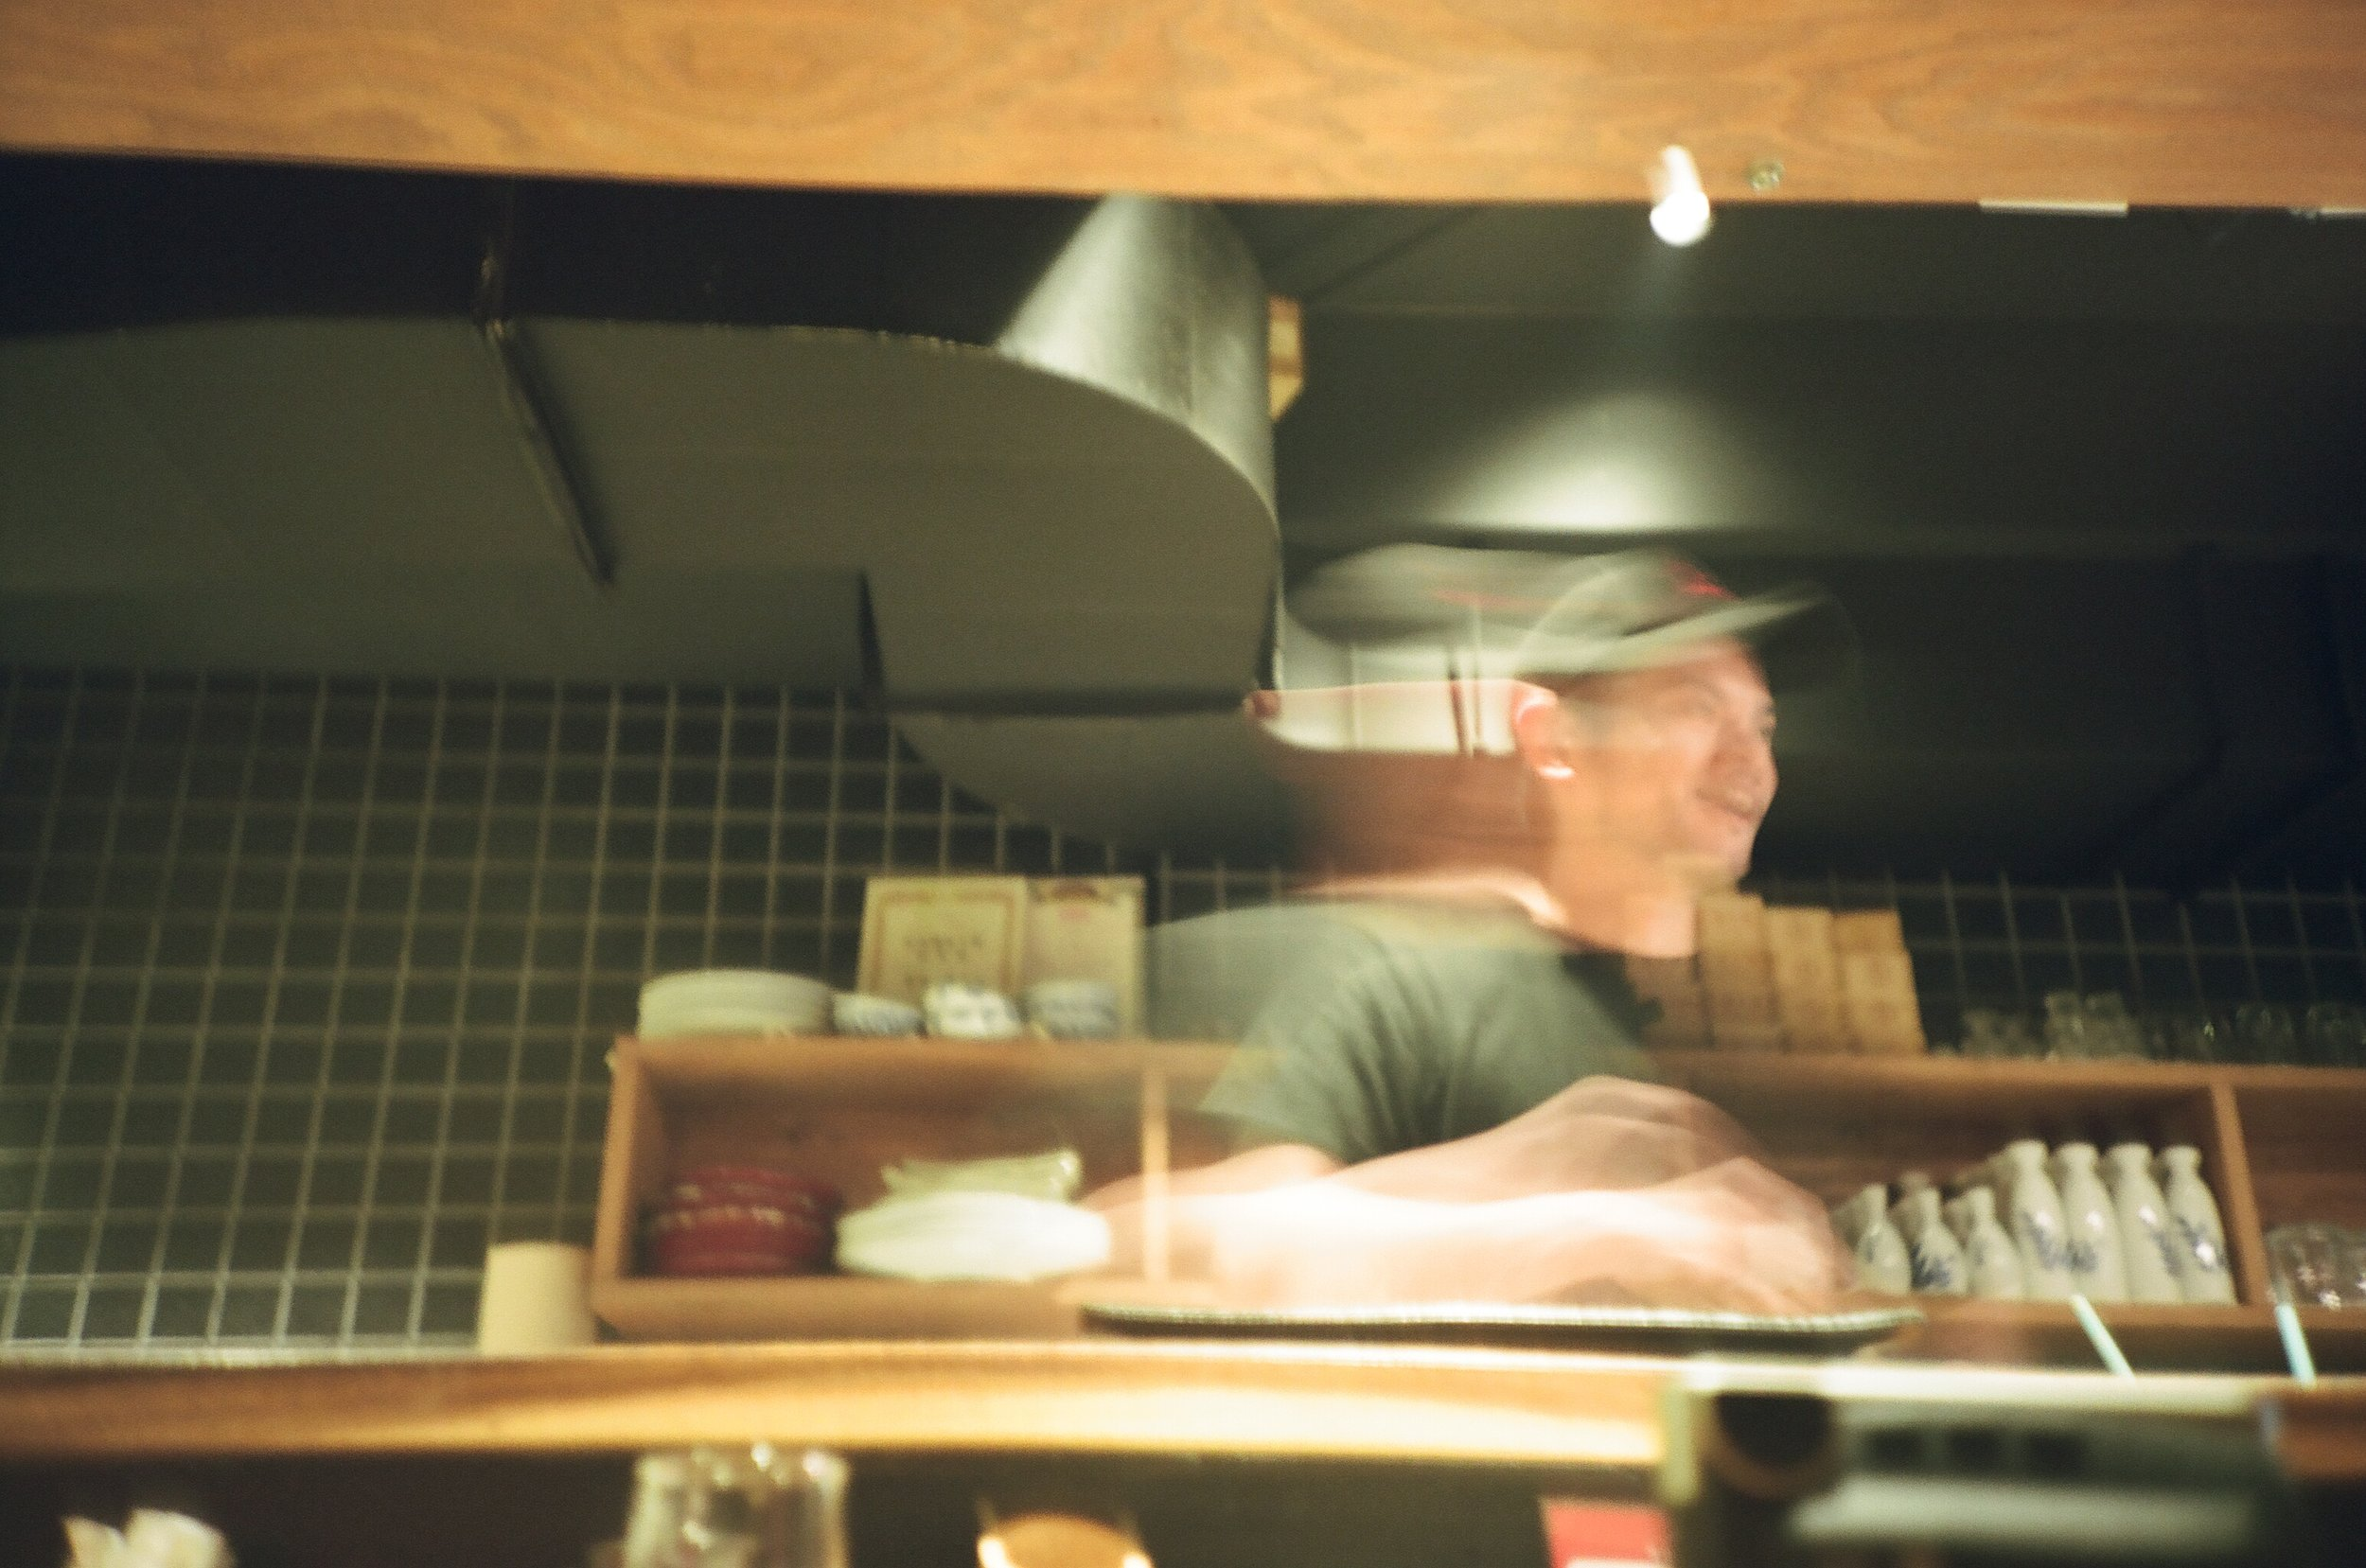 Another night at the sushi counter  (Lomo LCA, Portra 160)